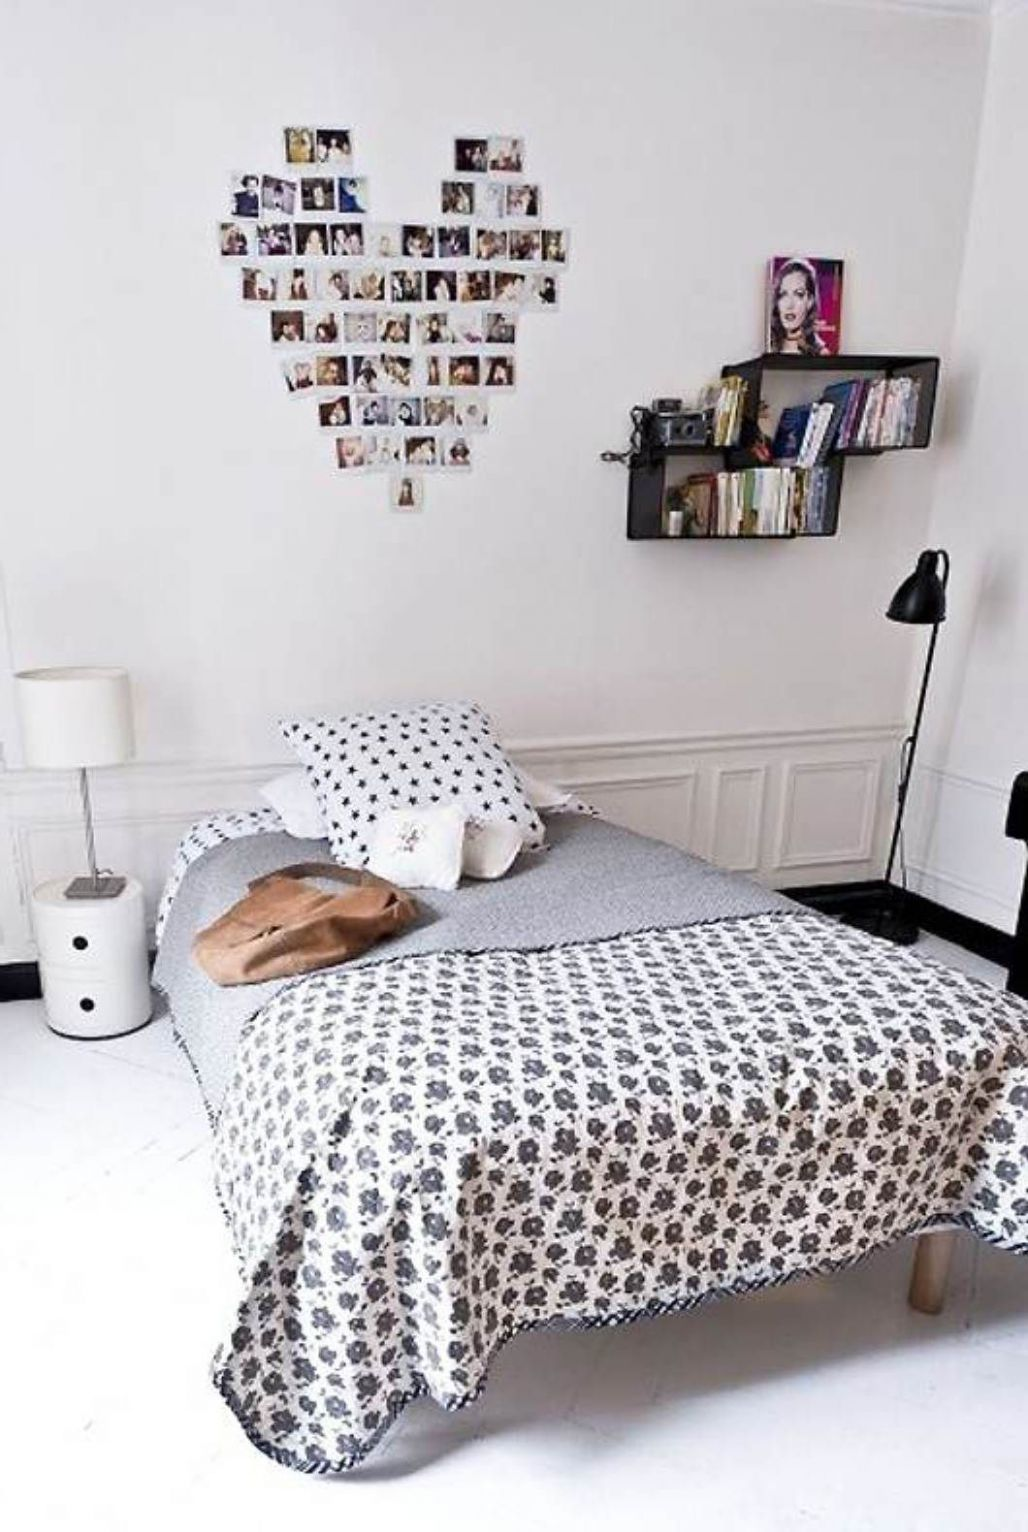 Bedroom : easy bedroom ideas easy diy bedroom storage ideas cute ..